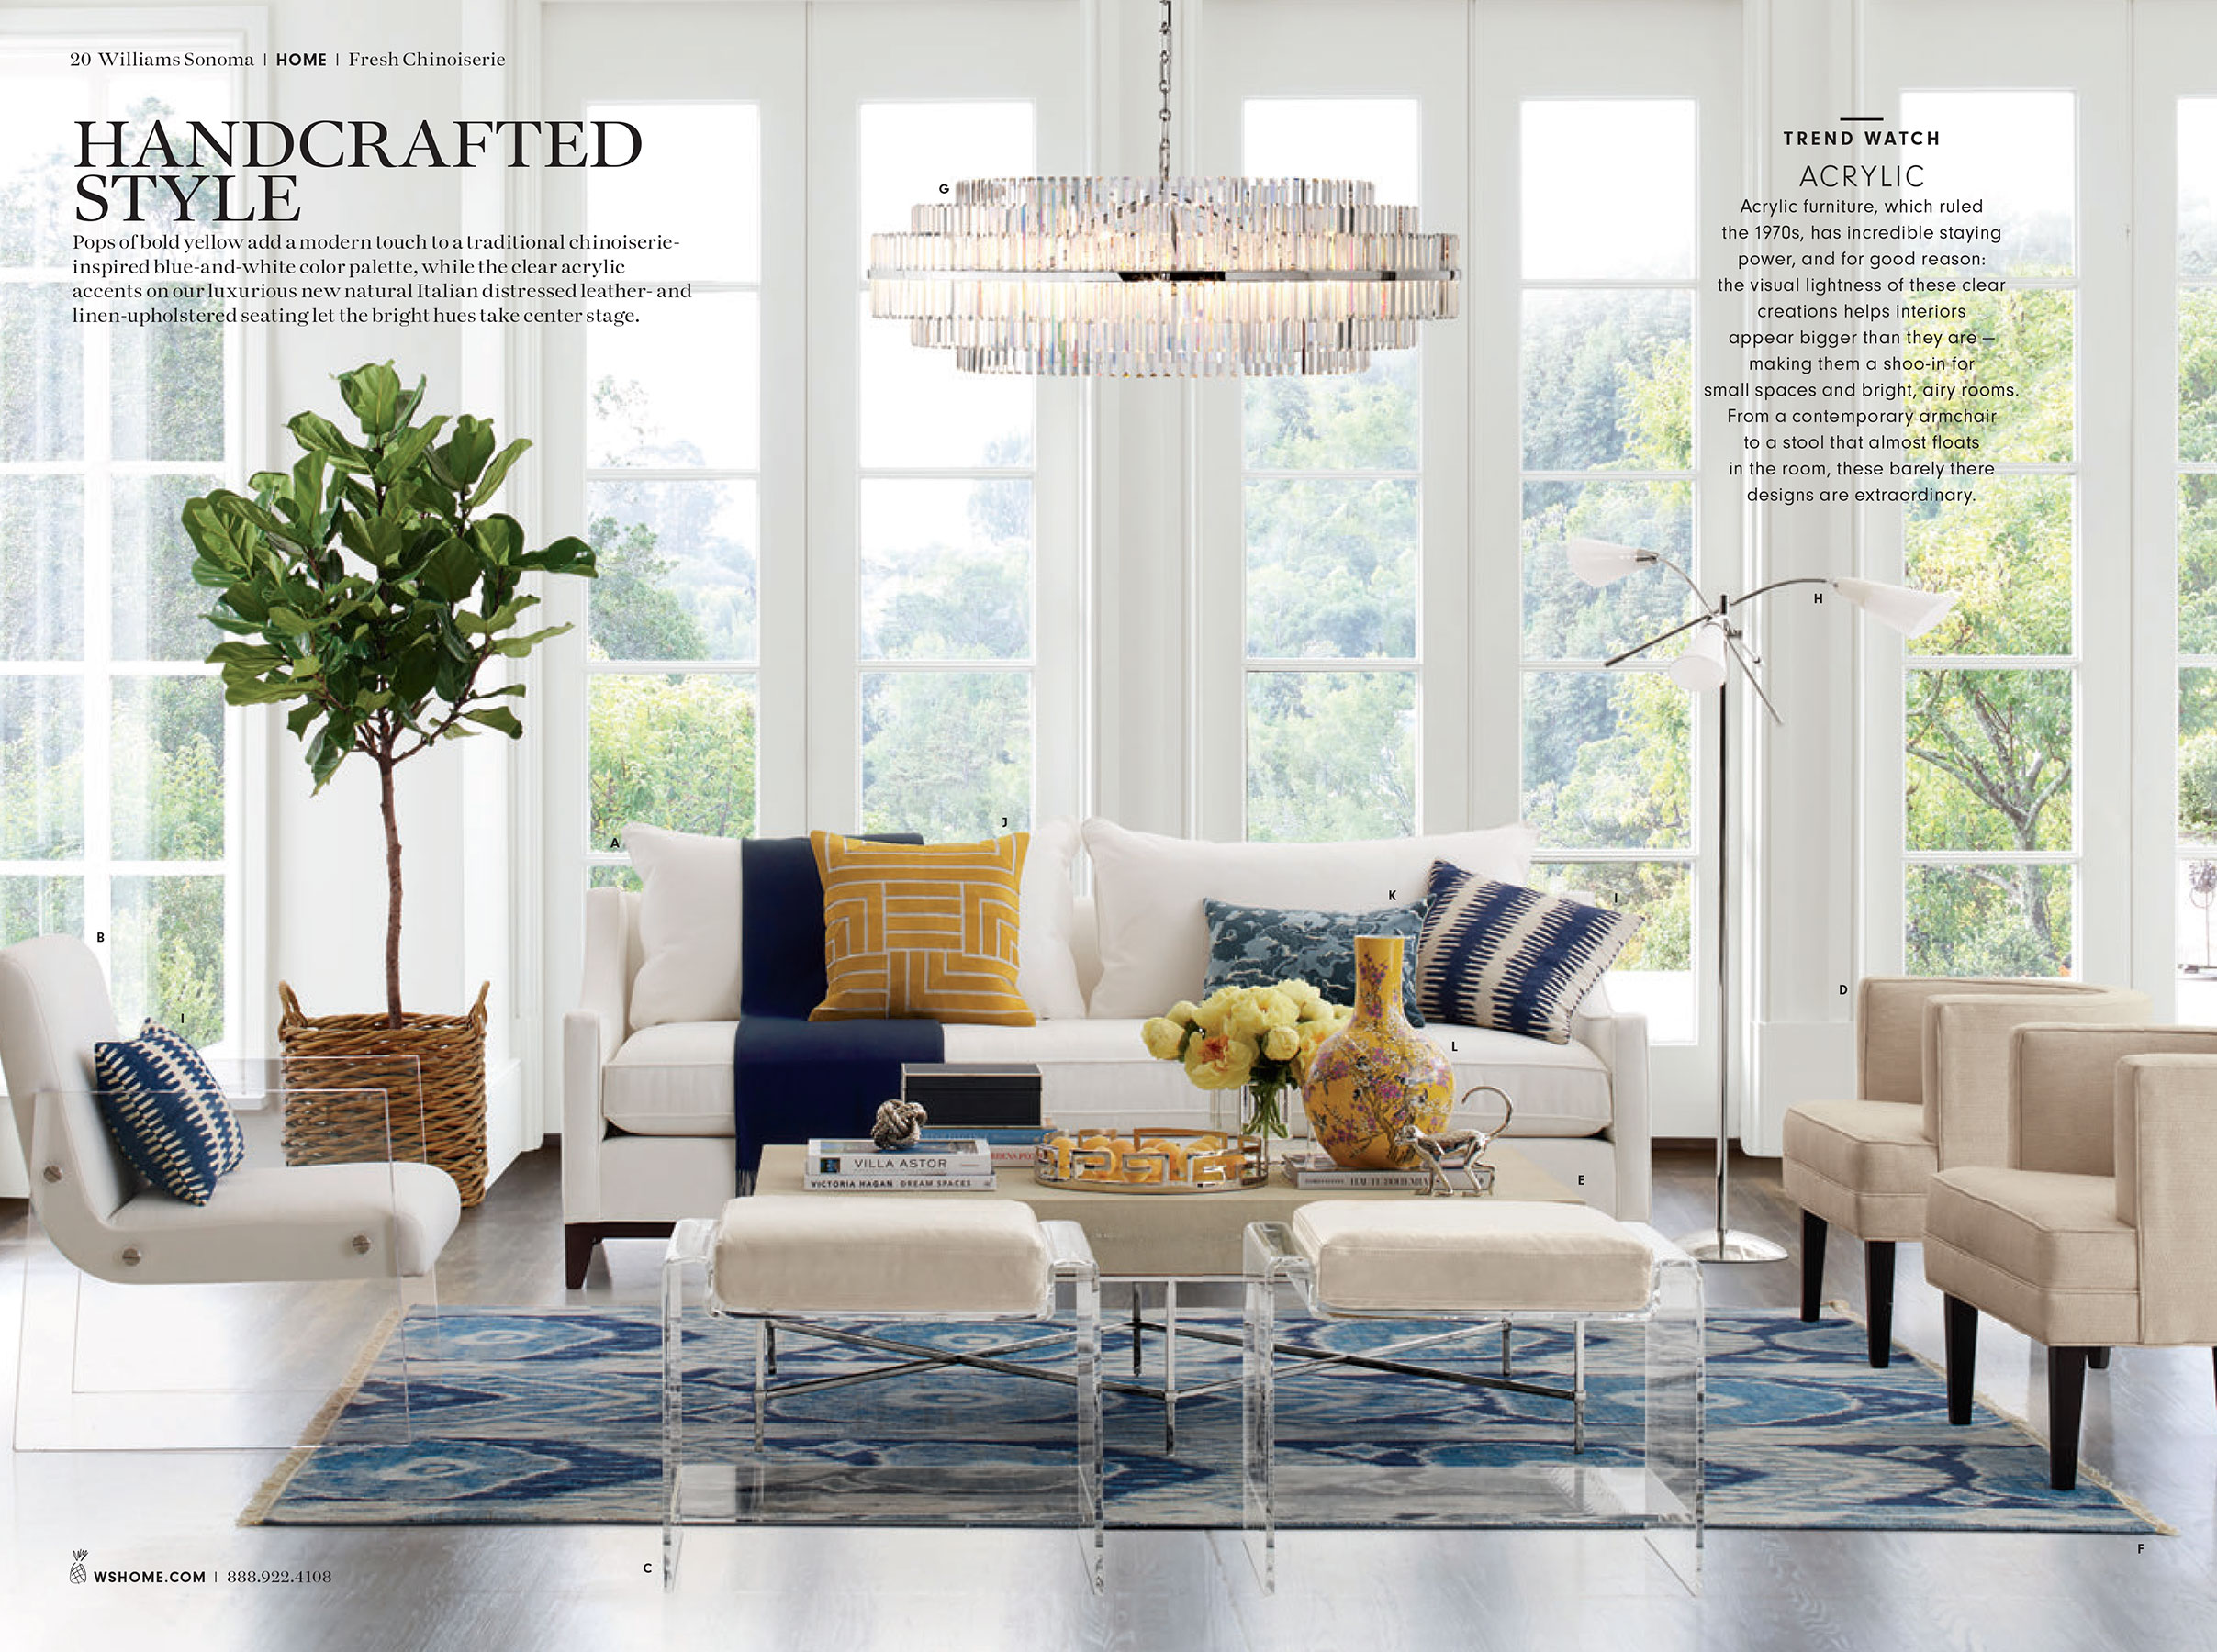 Interior Stylist: Stephen Pappas